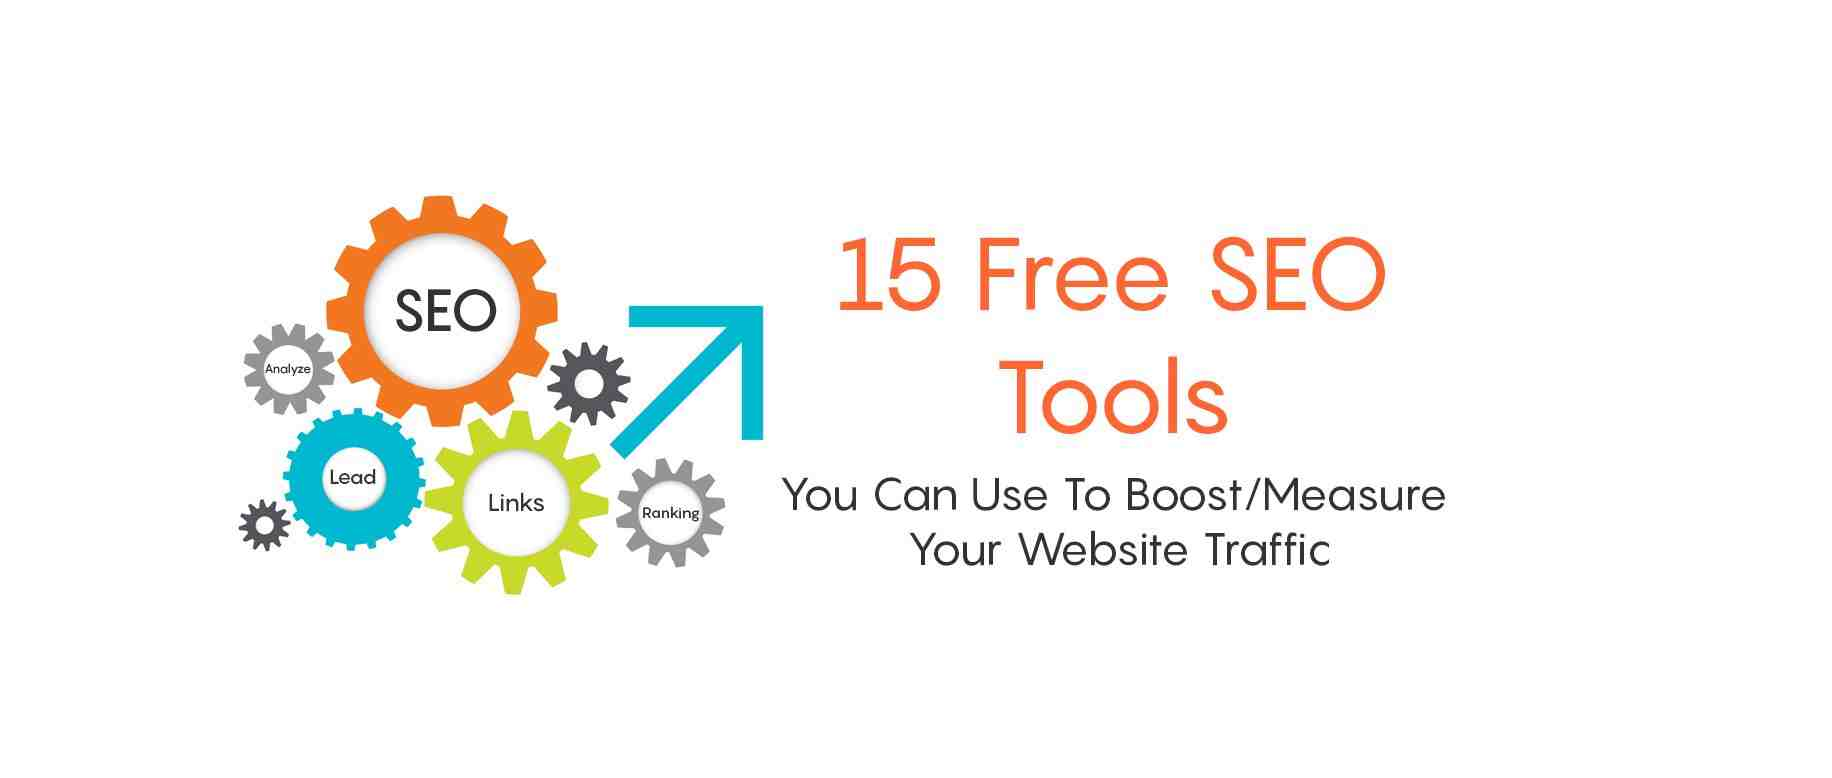 Can I do SEO on my own?